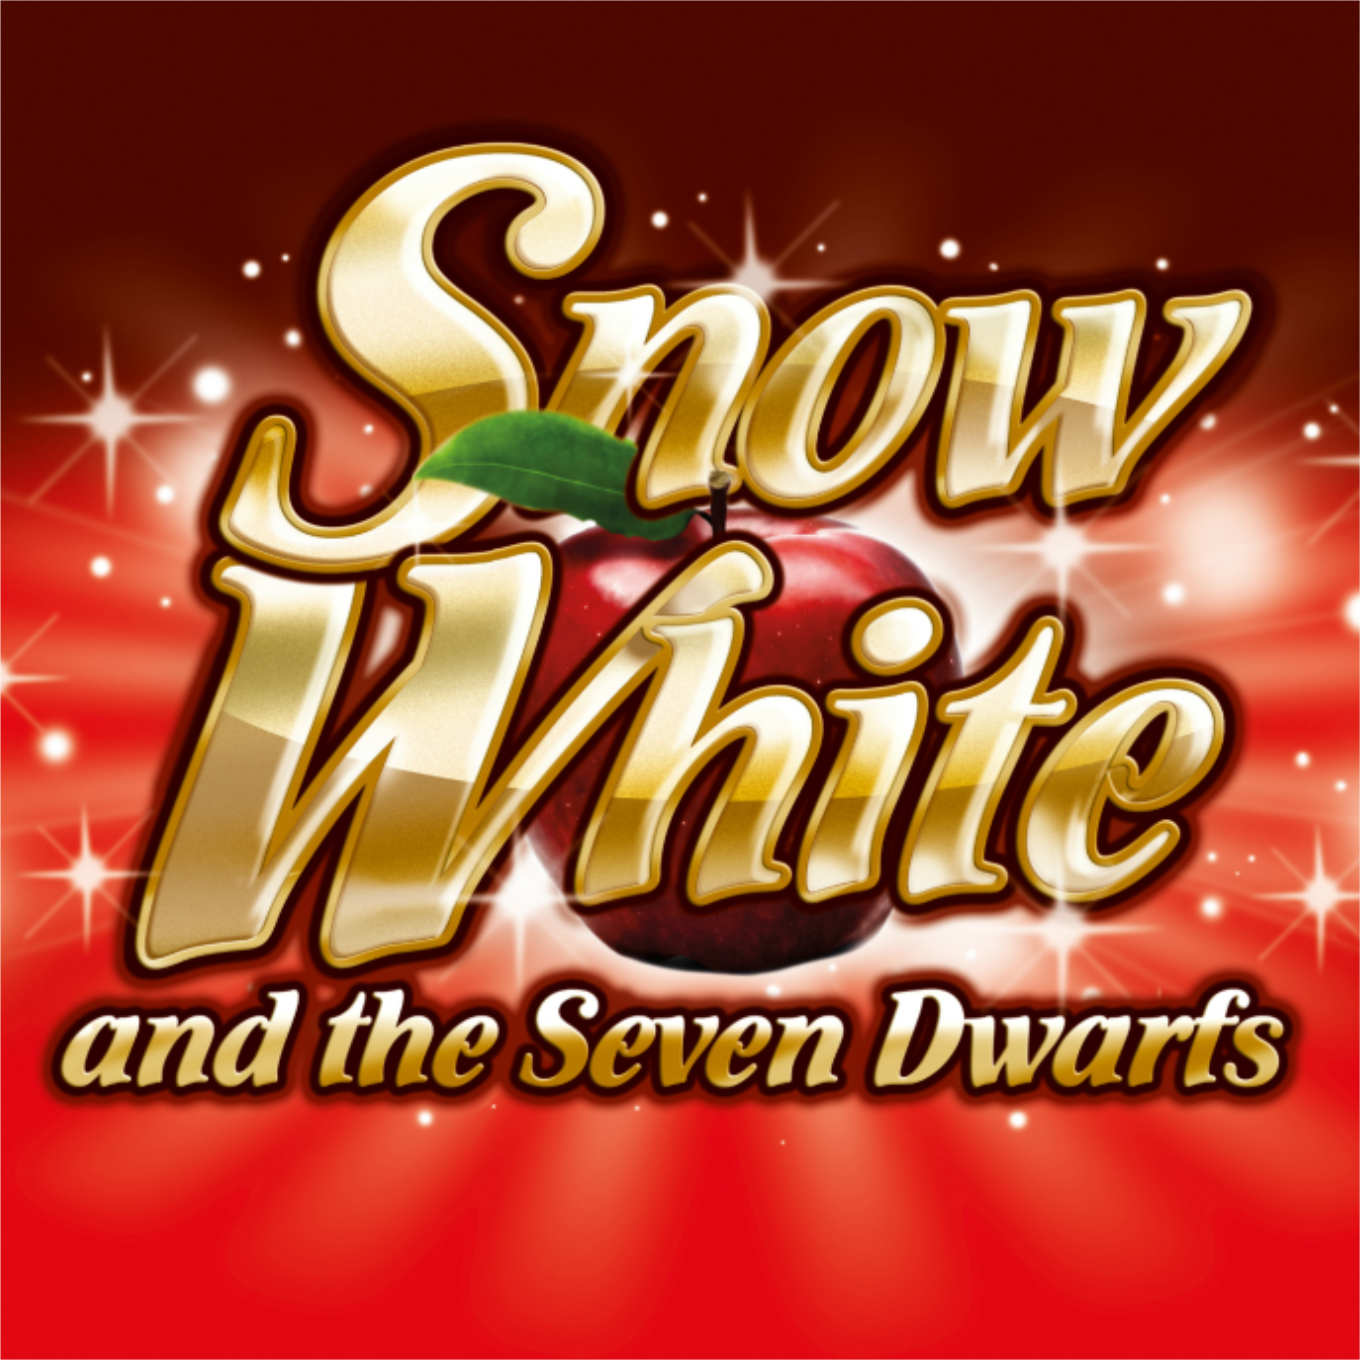 Finally .... this year's magical extravaganza once again promises you live music, stunning sets, sensational costumes, slick choreography and spectacular music.  Don't miss out on another Wyllyotts hit!Snow White and the Seven Dwarfs runs from Sat 11th Dec 2021 - Sun 2nd Jan 2022Performances are generally 1pm and 5pm daily.Please choose your adult and child tickets accordingly and if you qualify for a family ticket it will automatically change them to family tickets in your basket.Child tickets are for children aged under 16 years.Babe in arms tickets are for children under 12 months. They are £5 and need to be booked through Box Office. Please call the box office to book a babe in arms as you will need to show a ticket on the day and they are not available to book online.Running Time including interval 2hrs 30mins